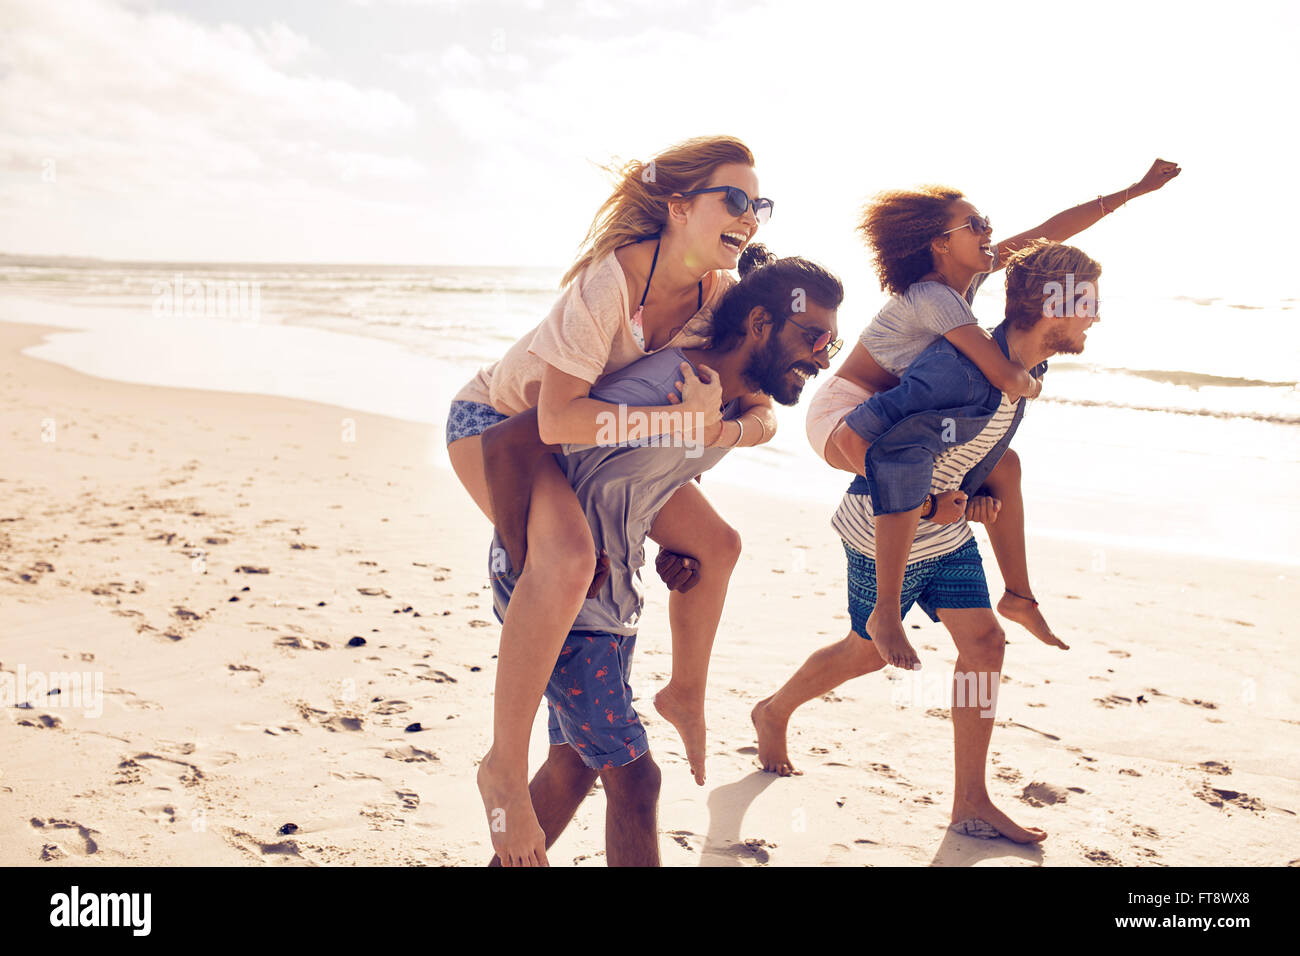 Two young men giving their girlfriends piggyback rides at the beach. Cheerful young friends enjoying summertime - Stock Image